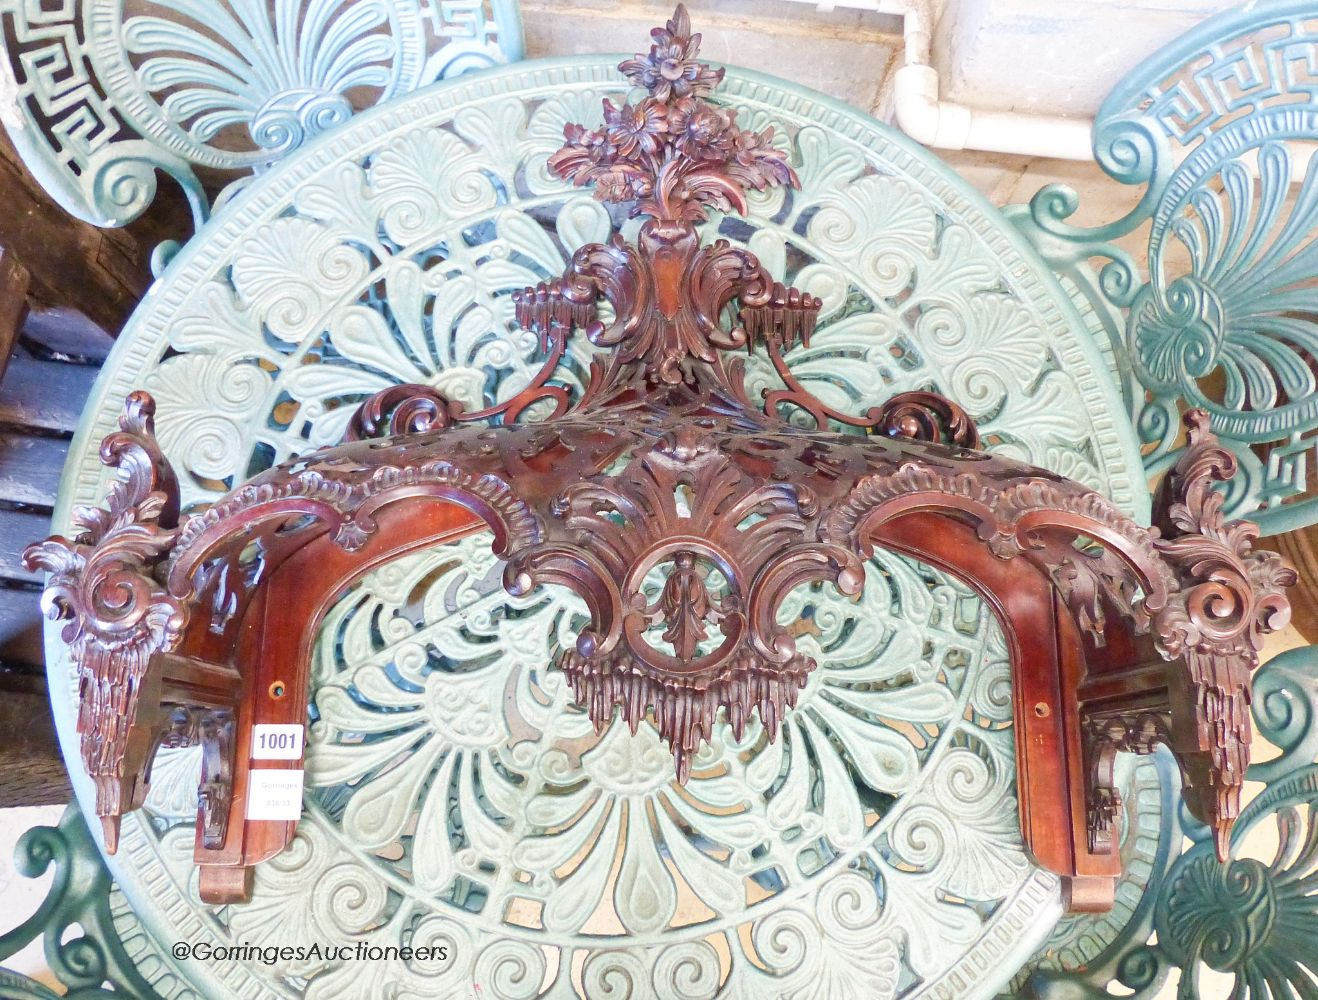 Gorringes Weekly Antiques Sale - Monday 27th September 2021